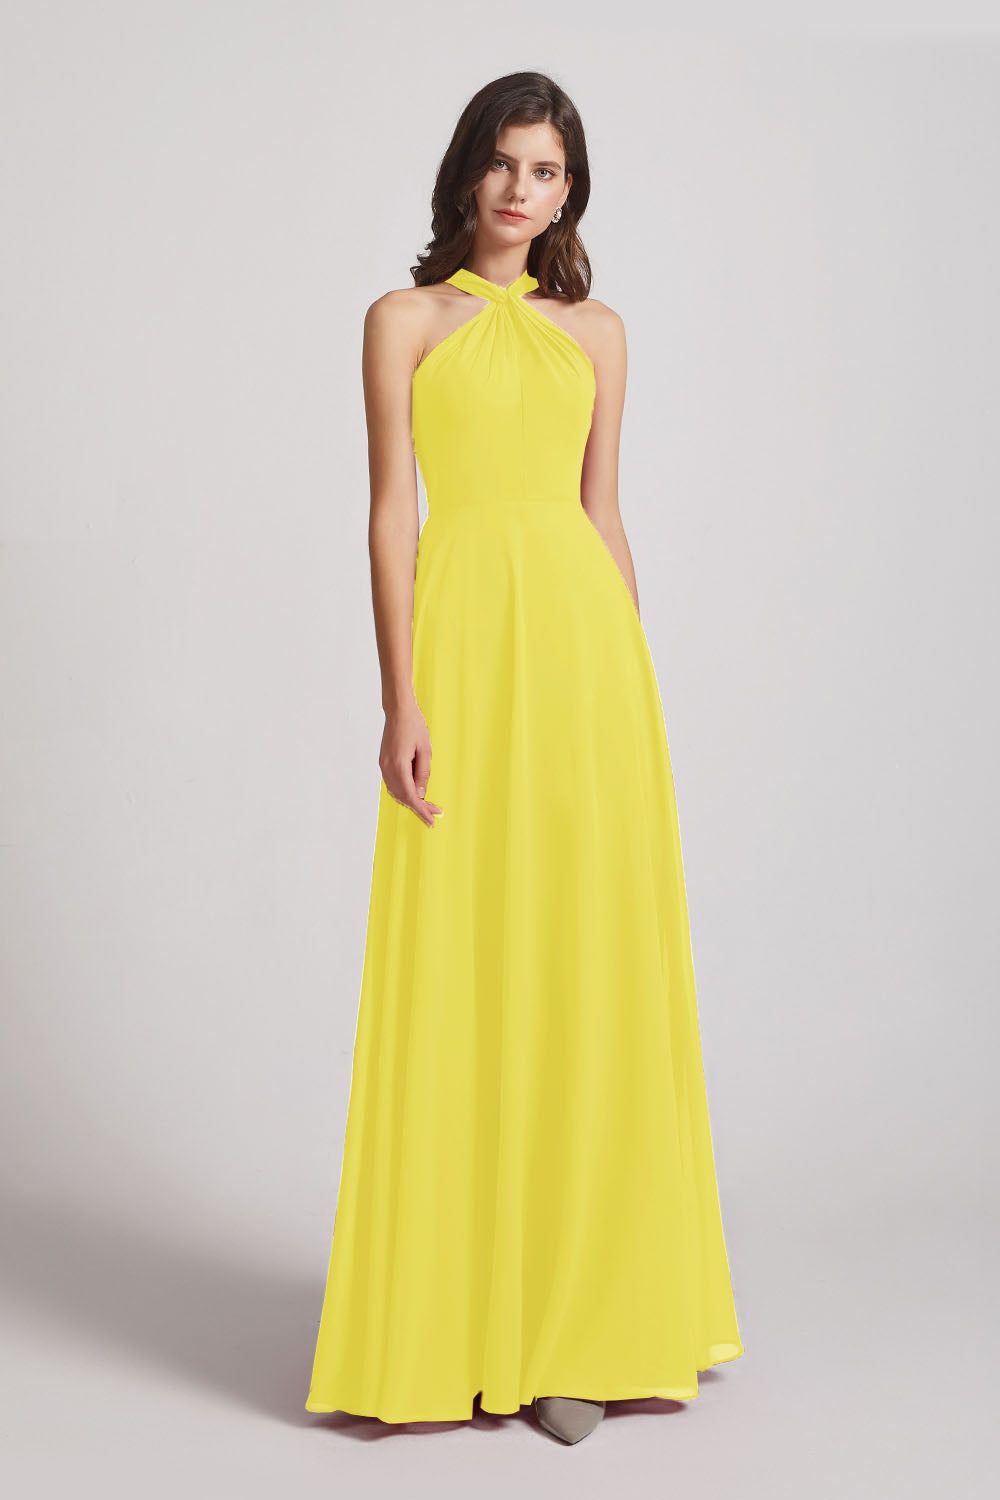 Alfa Bridal Yellow Floor Length Chiffon Bridesmaid Dresses with Criss Cross Neckline (AF0113)